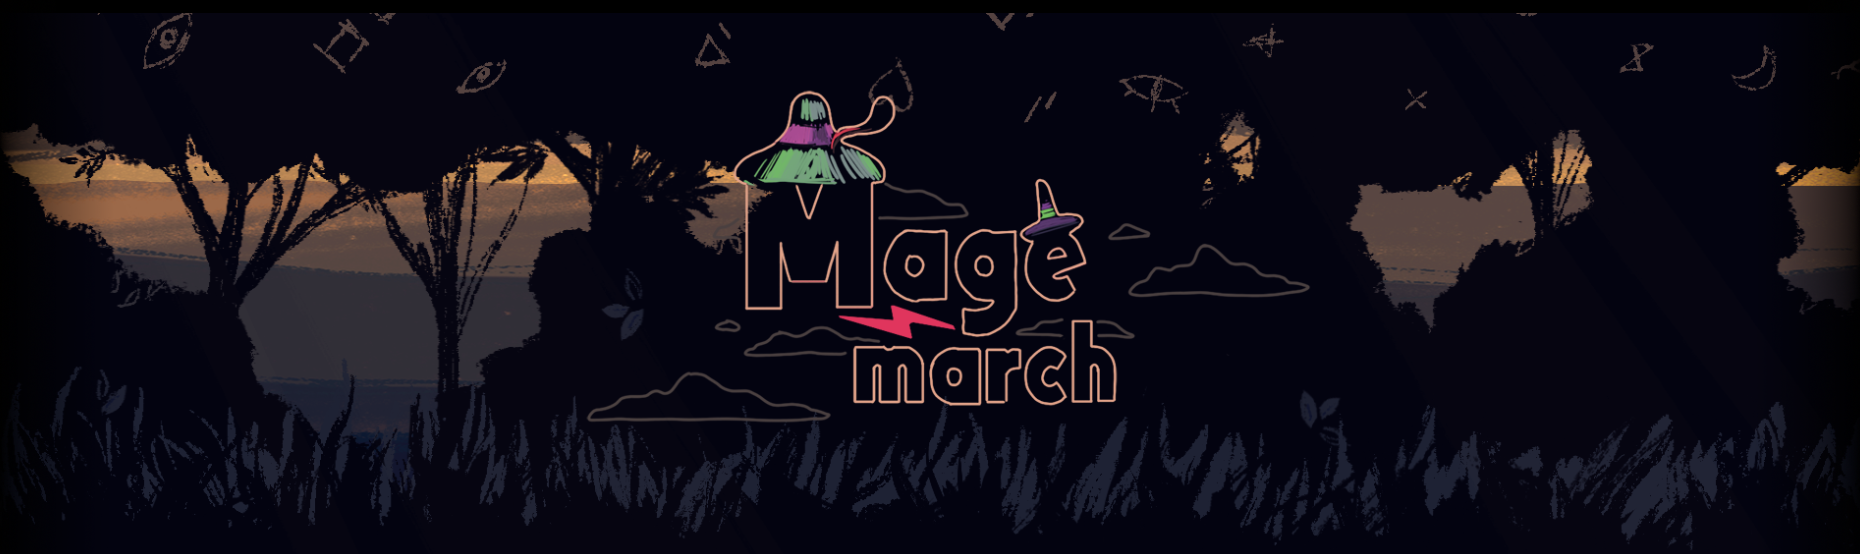 Mage March